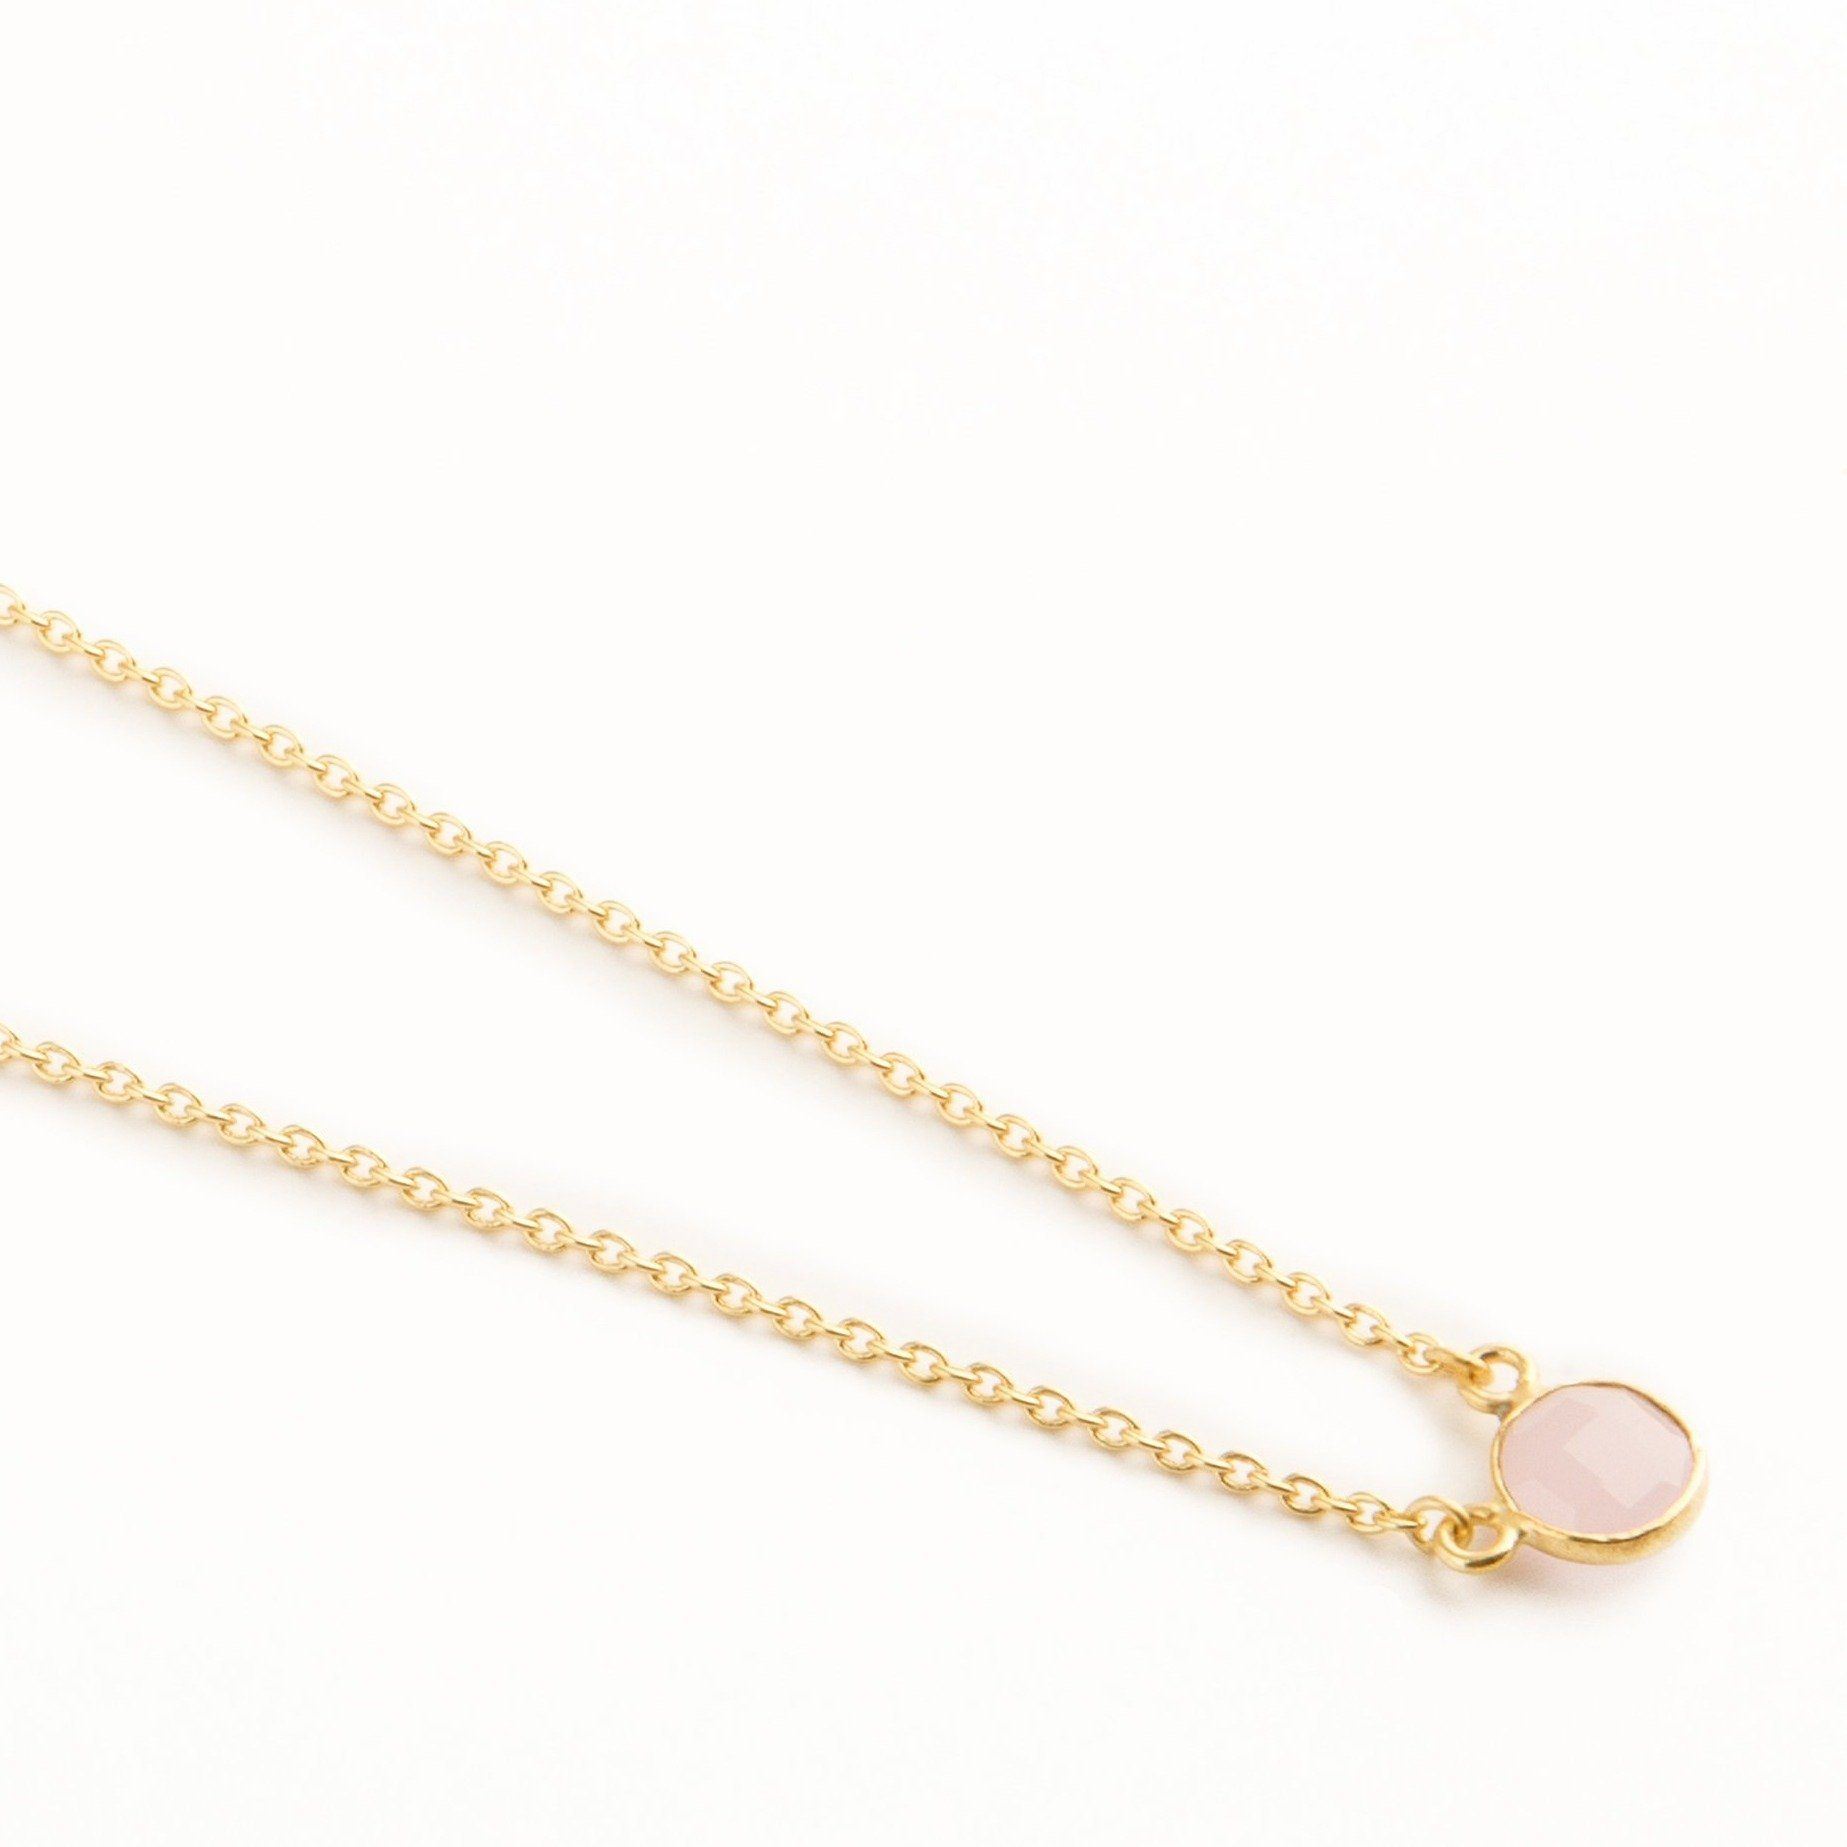 Adele mini gold-plated silver round chain in Rose Quartz - Neckpieces